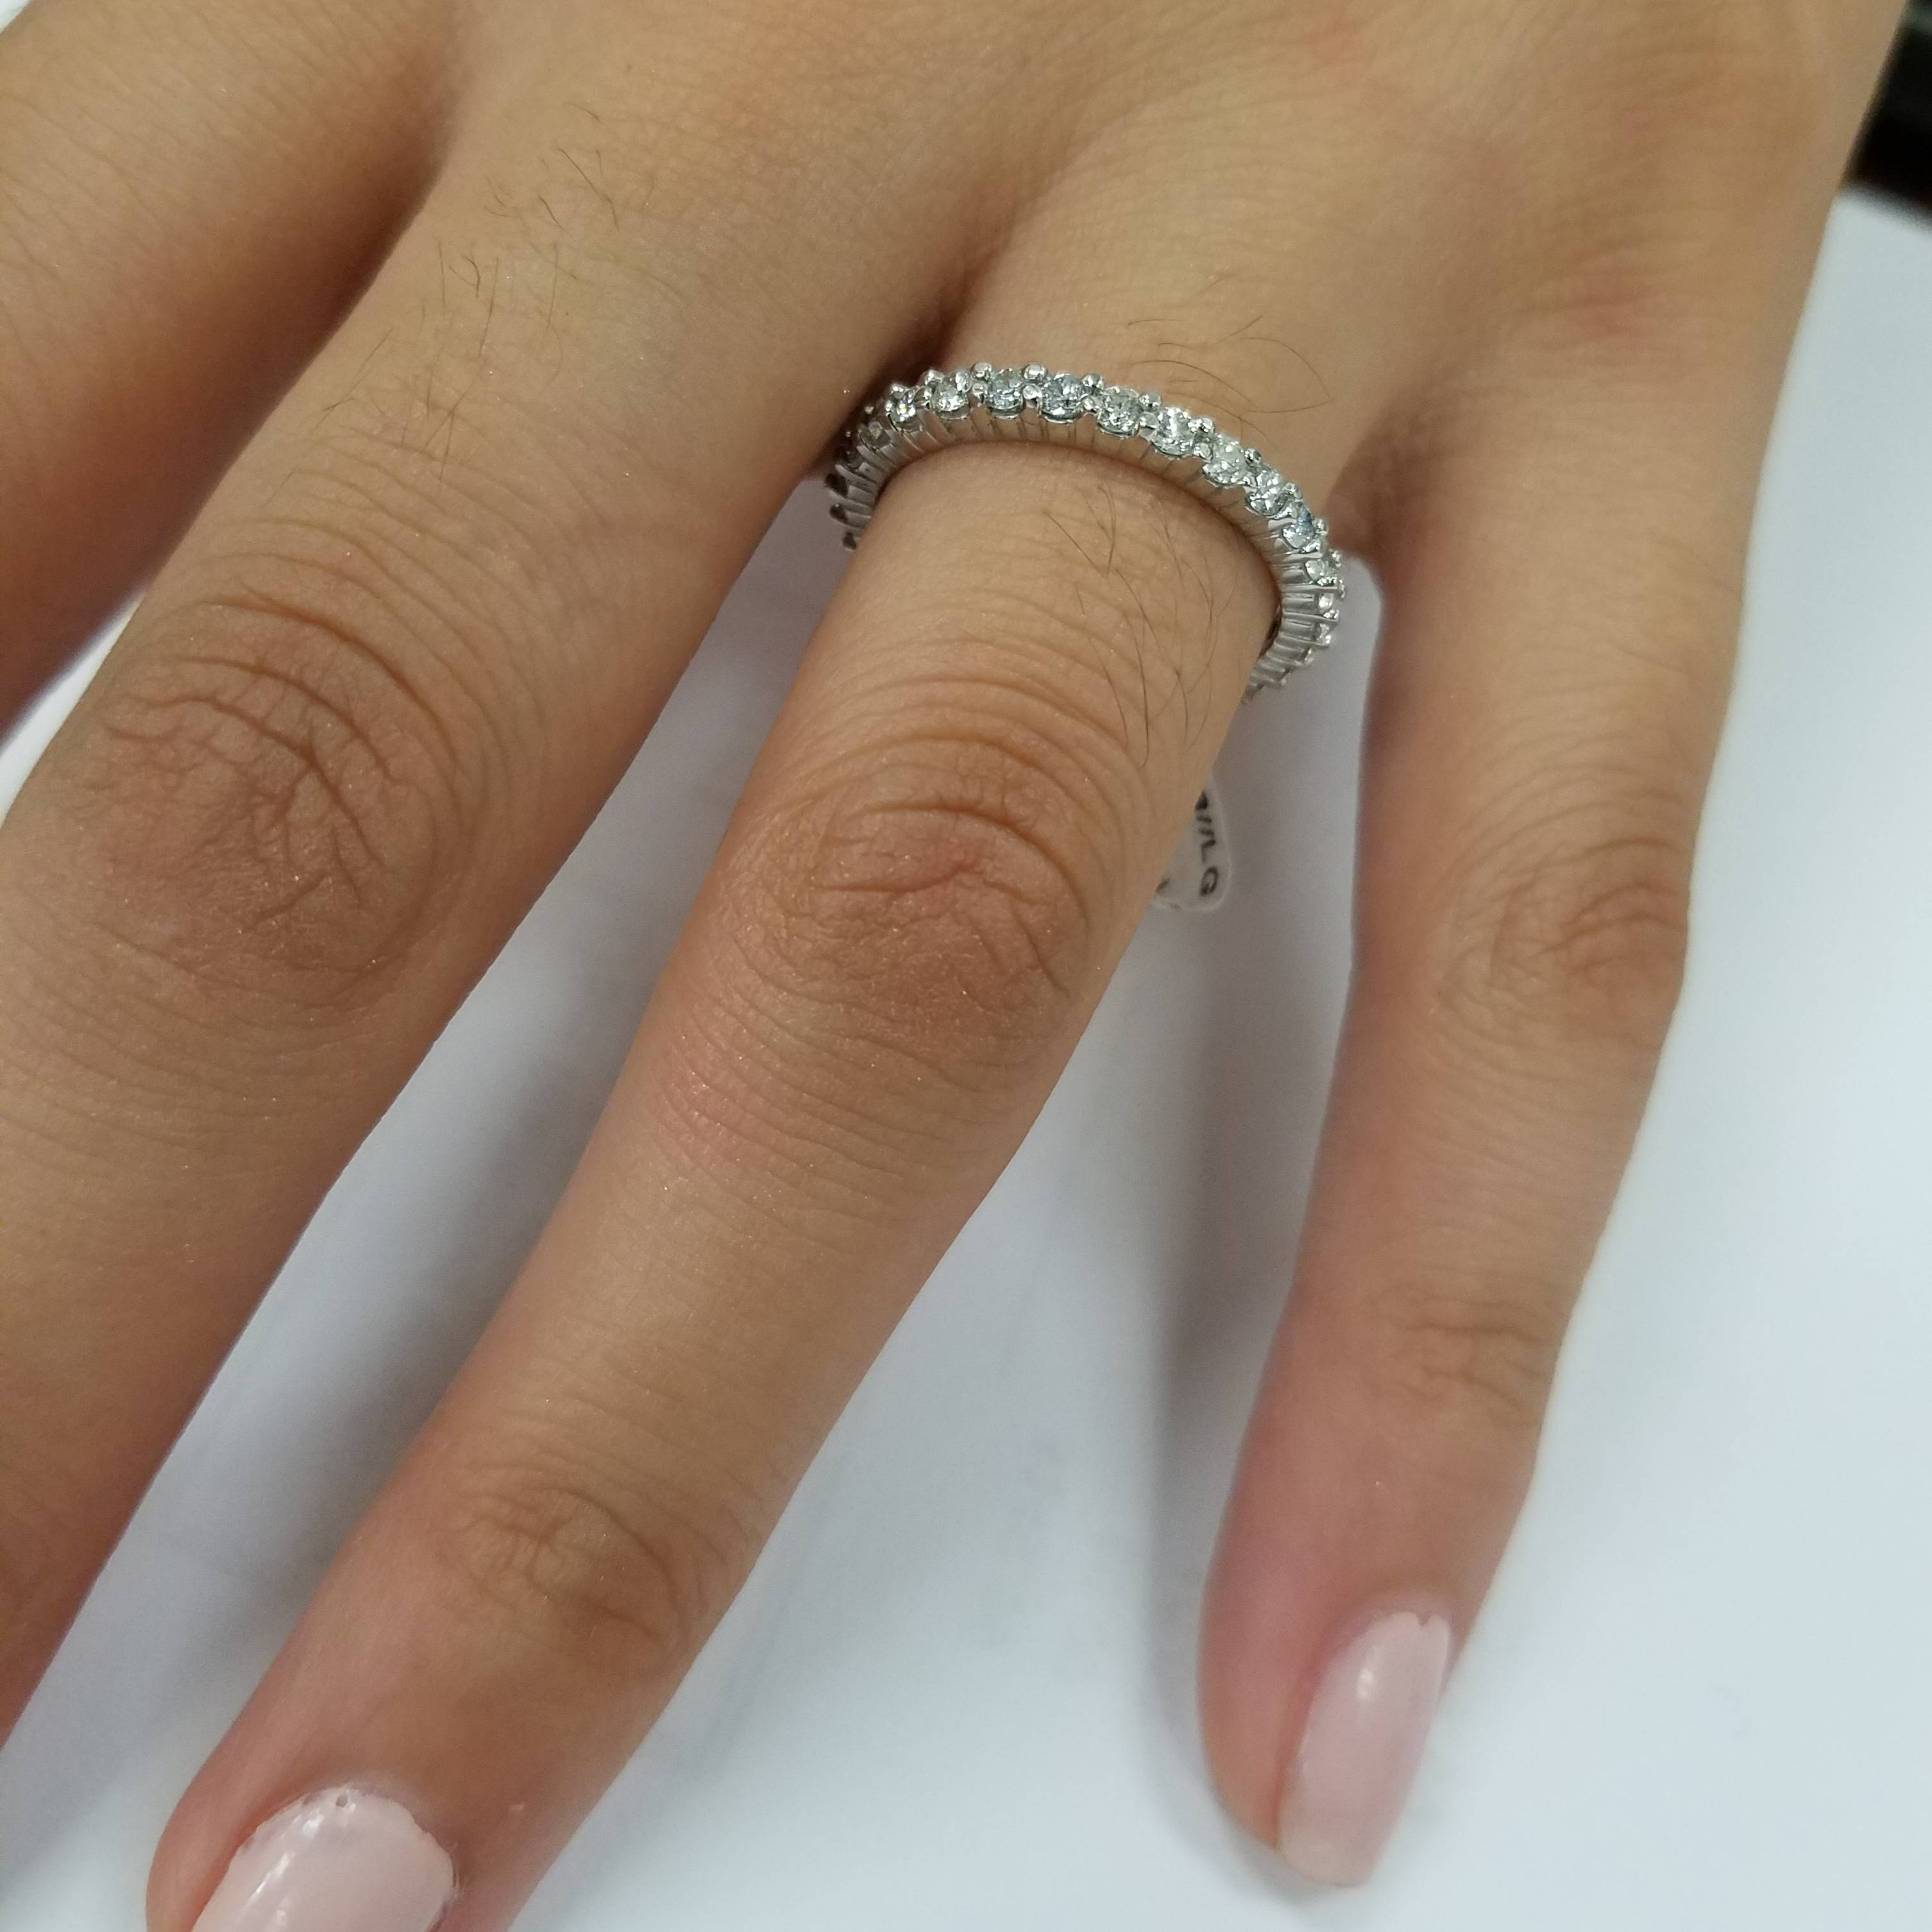 Inspirational Women's Engagement Rings and Wedding Bands